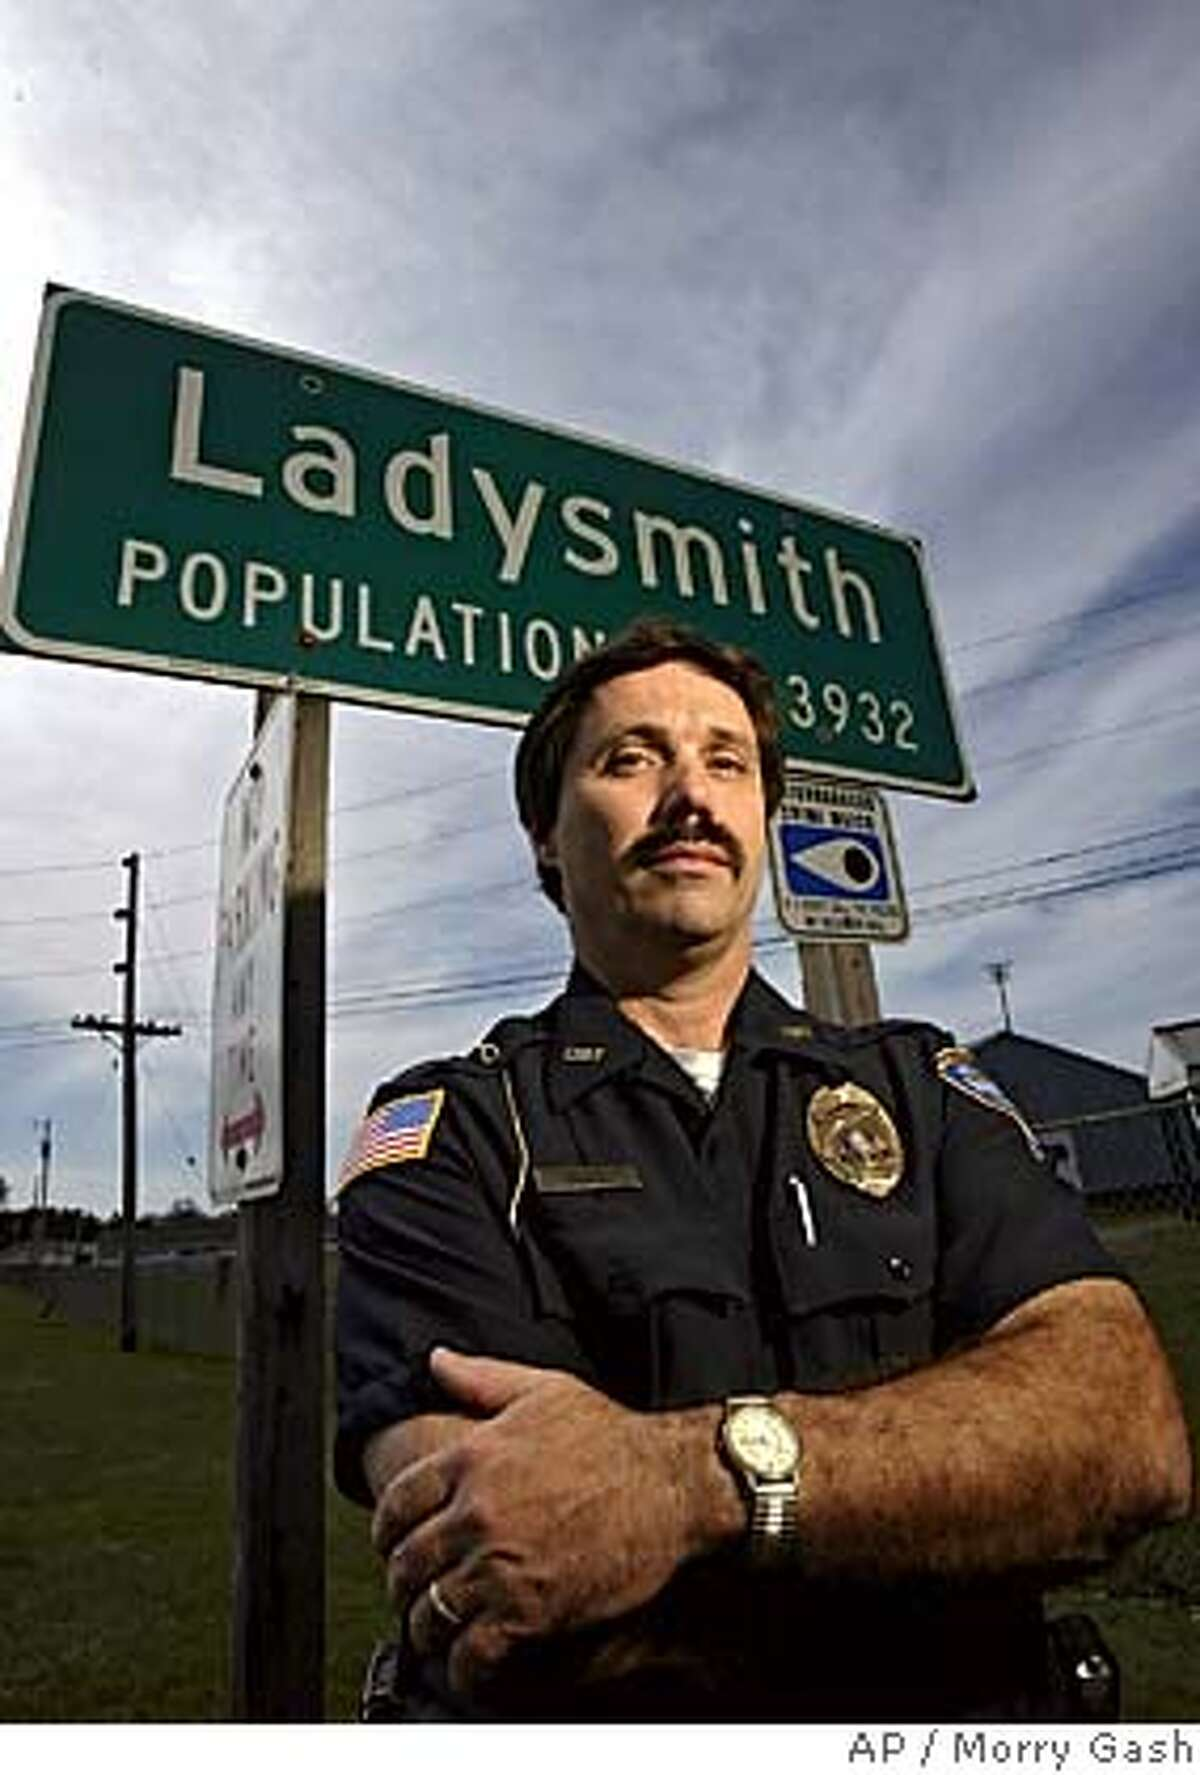 Ladysmith Police Chief Dean Meyer stands near a sign at the edge of town Thursday, April 21, 2005, in Ladysmith, Wis. Meyer has been working on the case involving Robert Rogers for 22 years. Rogers is accused of recruited three of his brothers to do the killing that languished unsolved for 25 years. Two of his brothers sit in jail, accused of murder. A third provided evidence that broke open the case and won't be charged. (AP Photo/Morry Gash)